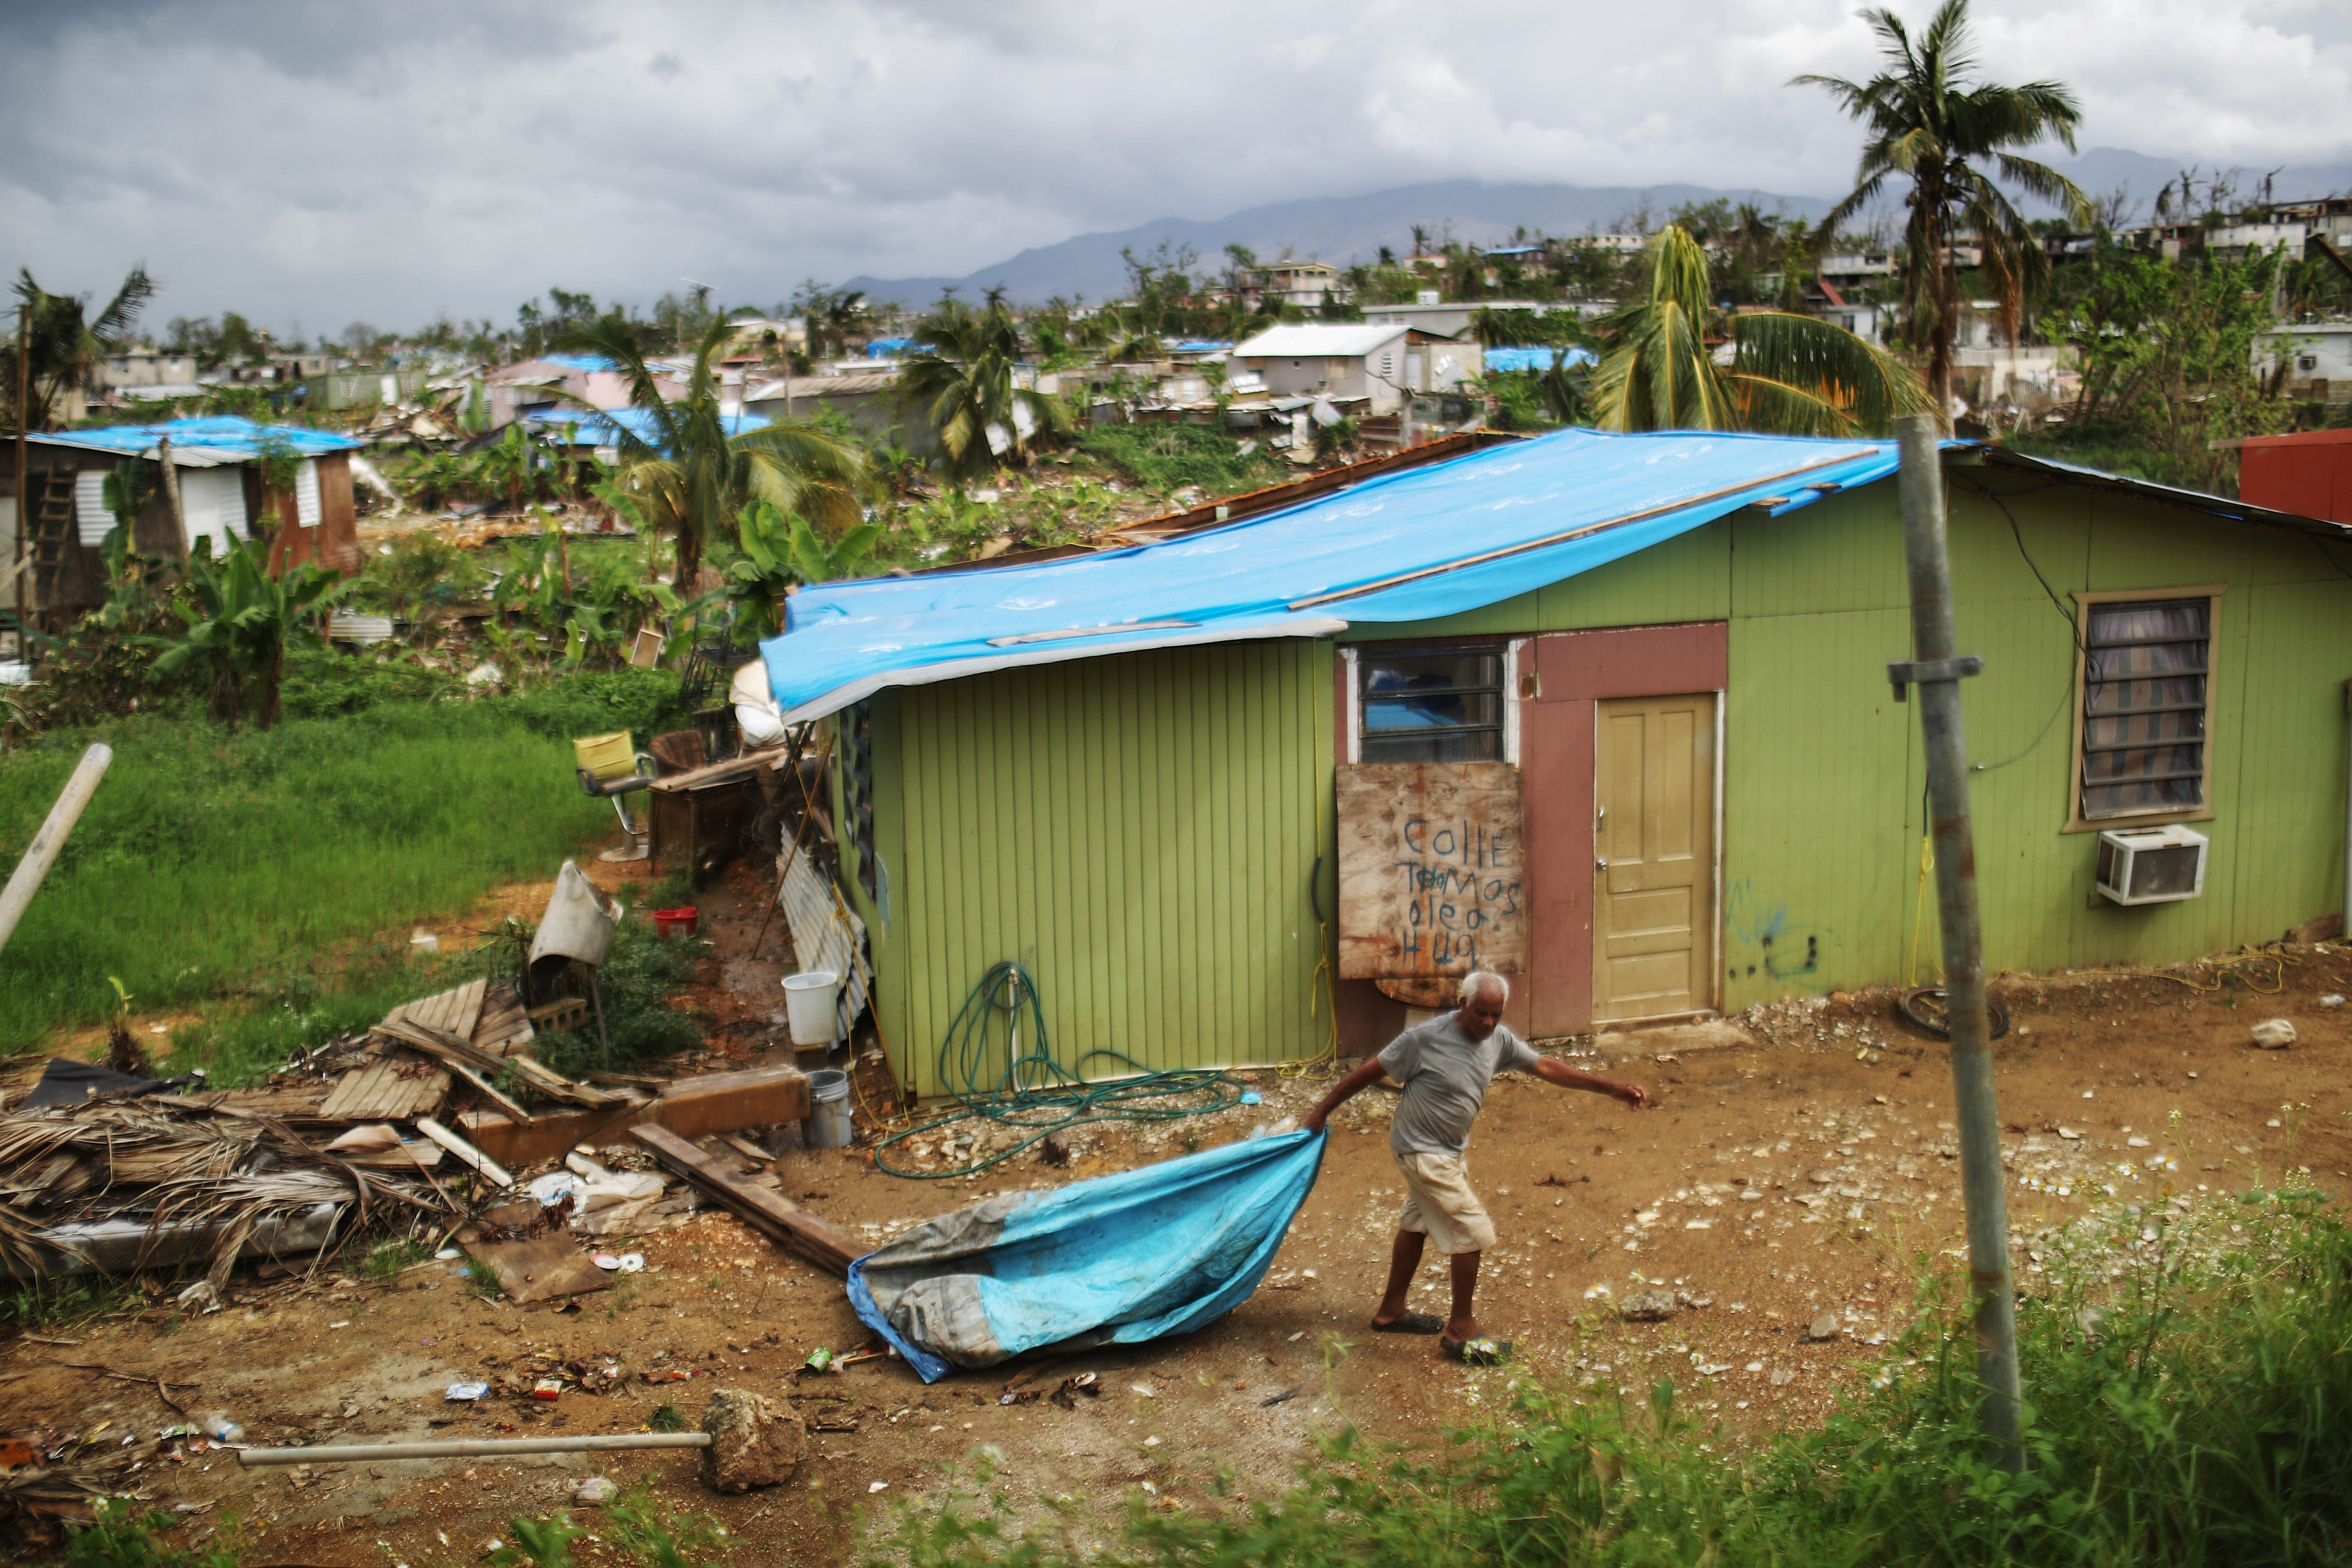 A local resident cleans debris near his damaged home in an area without electricity on Oct. 15, 2017 in San Isidro, Puerto Rico. Puerto Rico is suffering shortages of food and water in many areas and only 15 percent of grid electricity has been restored. Puerto Rico experienced widespread damage including most of the electrical, gas and water grid as well as agriculture after Hurricane Maria, a category 4 hurricane, swept through.